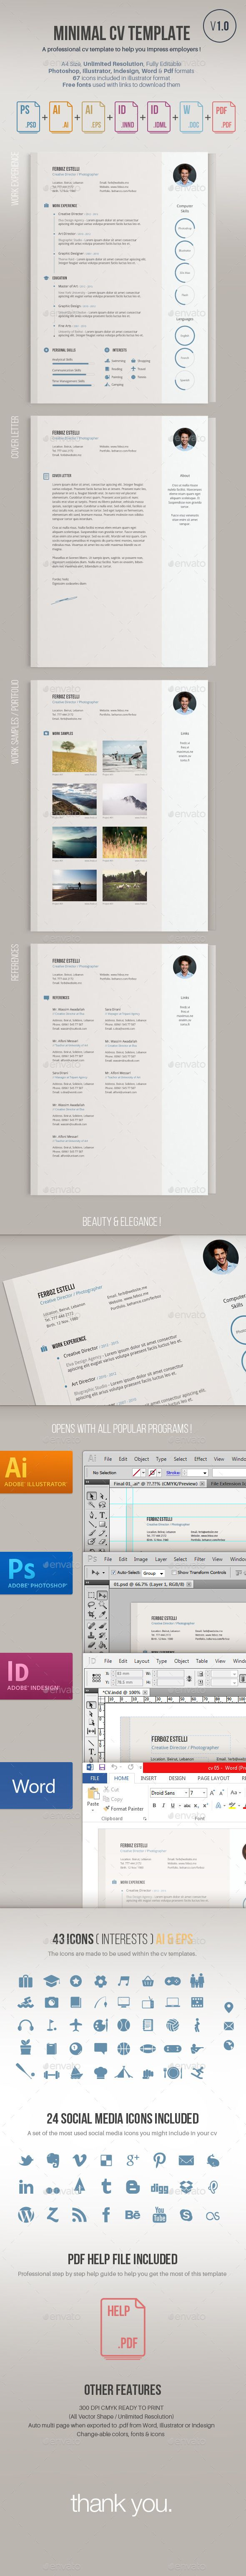 Cv Template 1.0 - #Resumes Stationery Download here: https://graphicriver.net/item/cv-template-10/9754190?ref=alena994